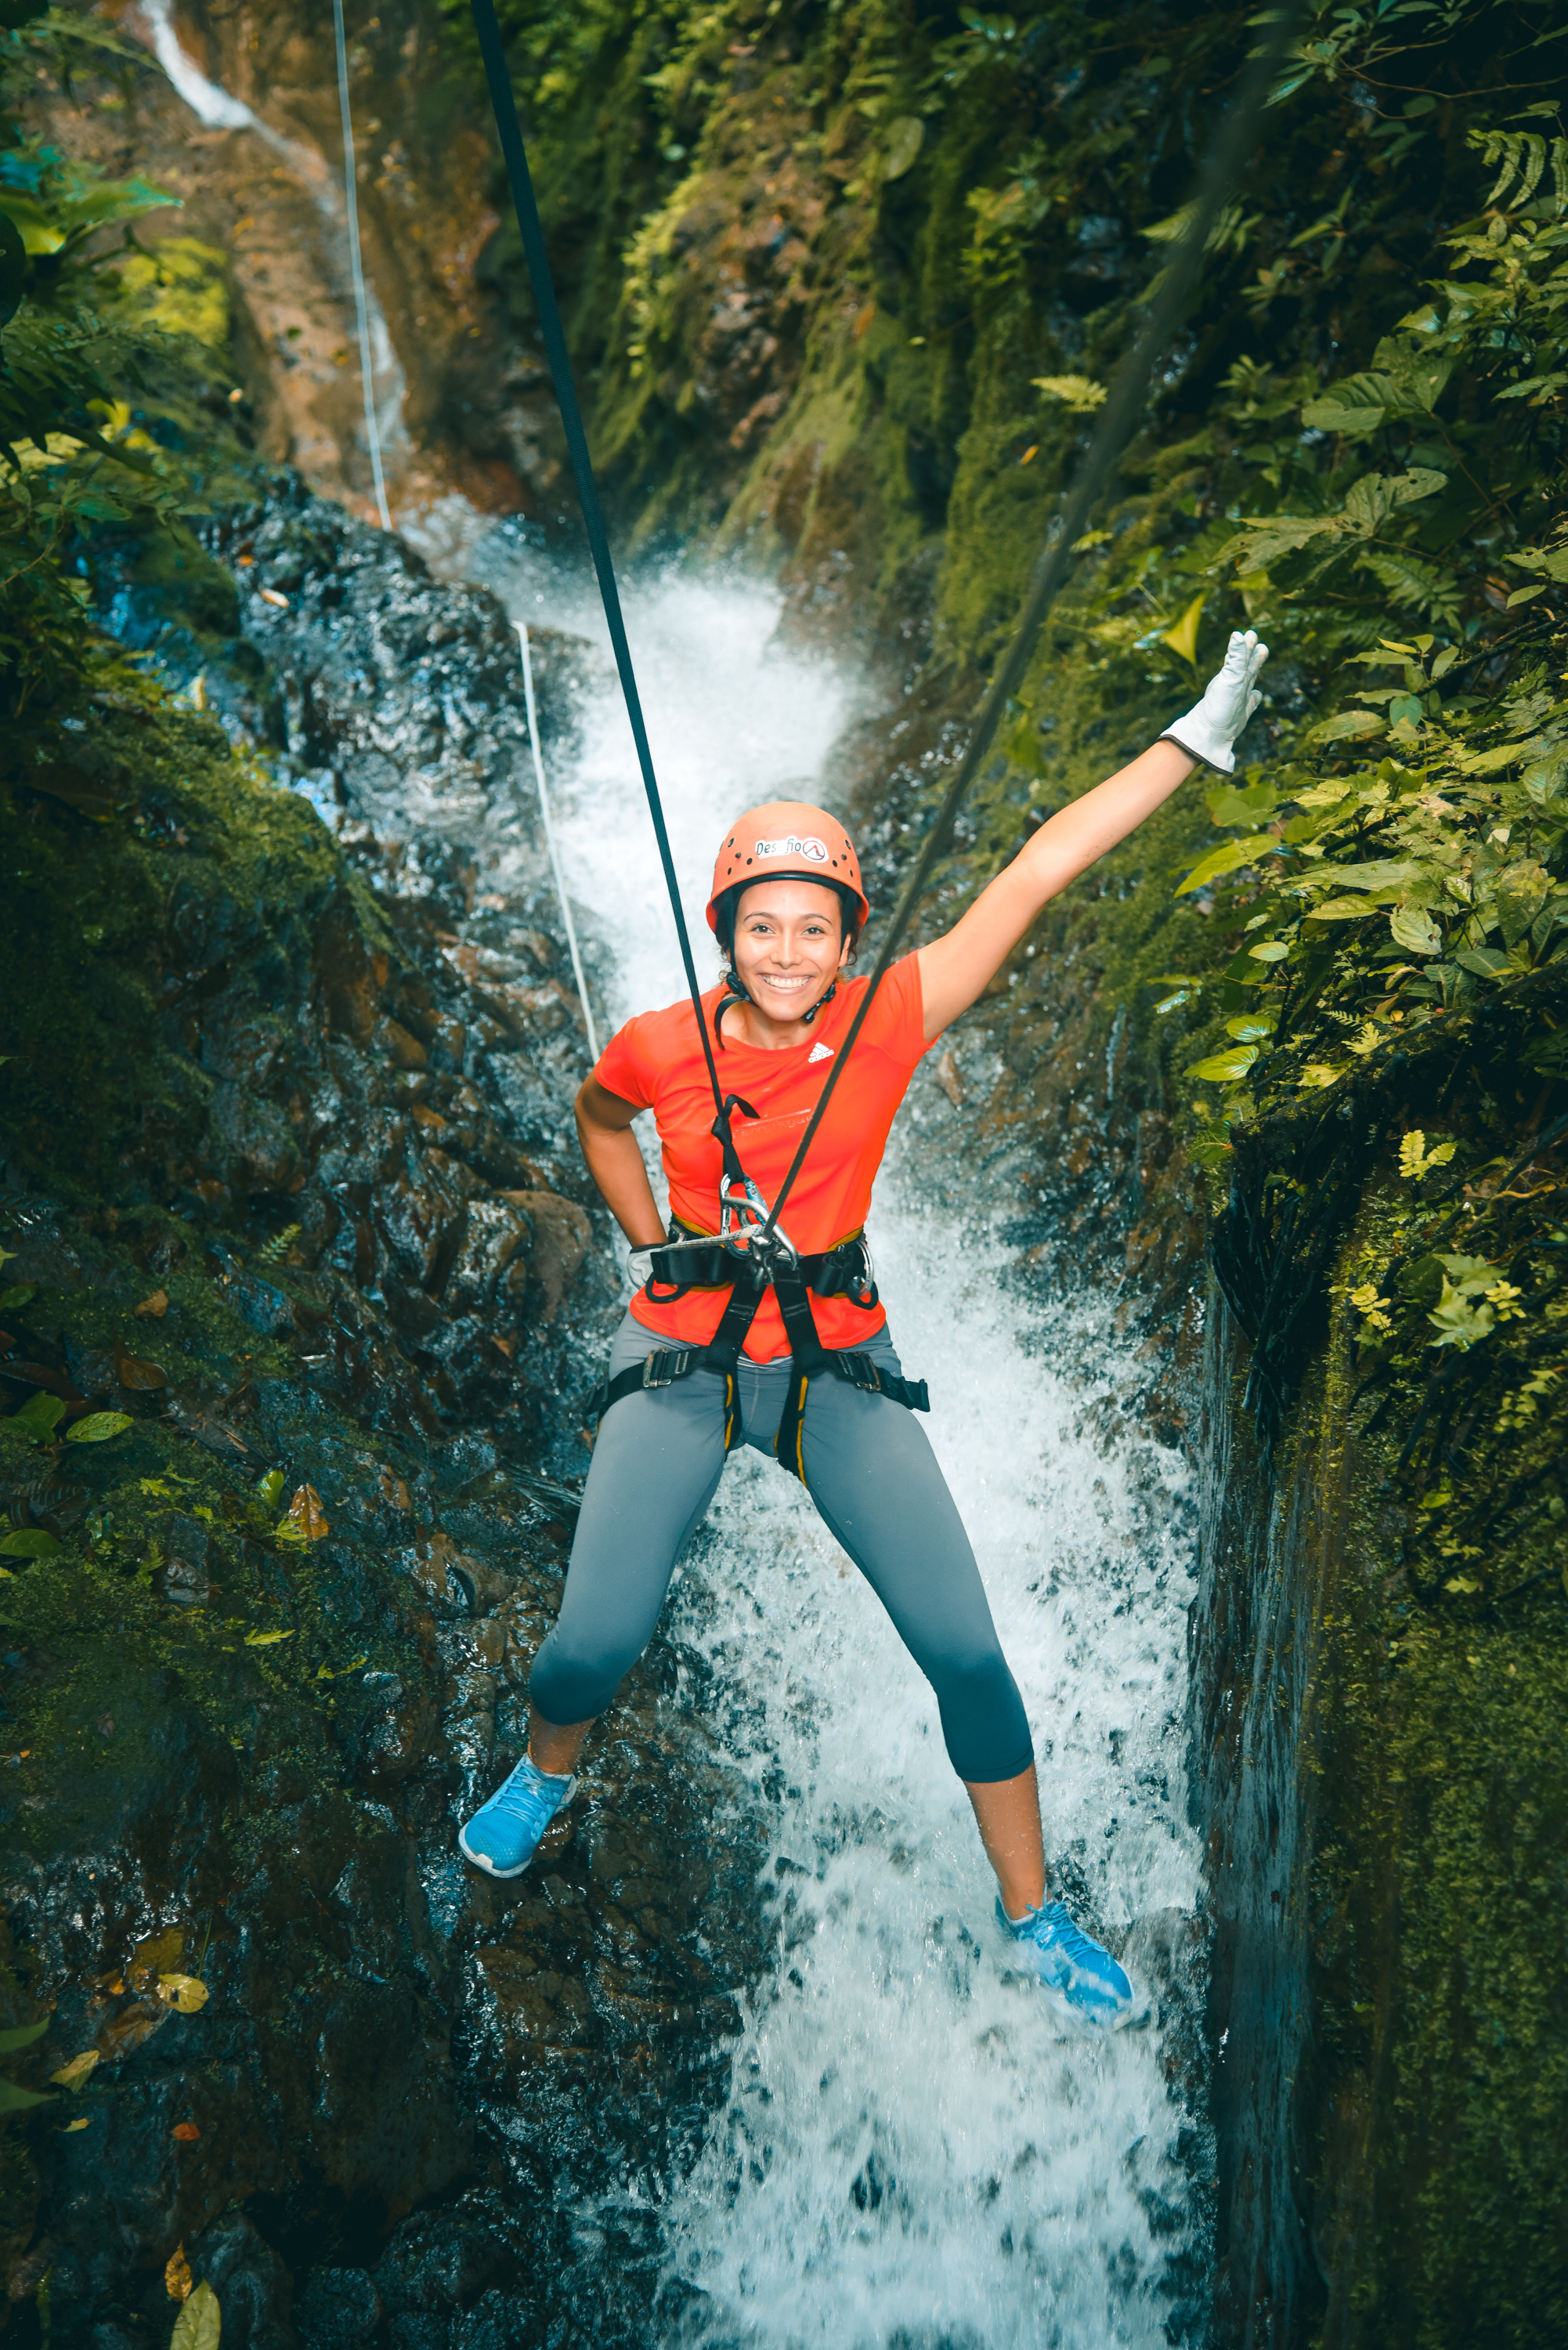 Canyoning in the Lost Canyon in Costa Rica